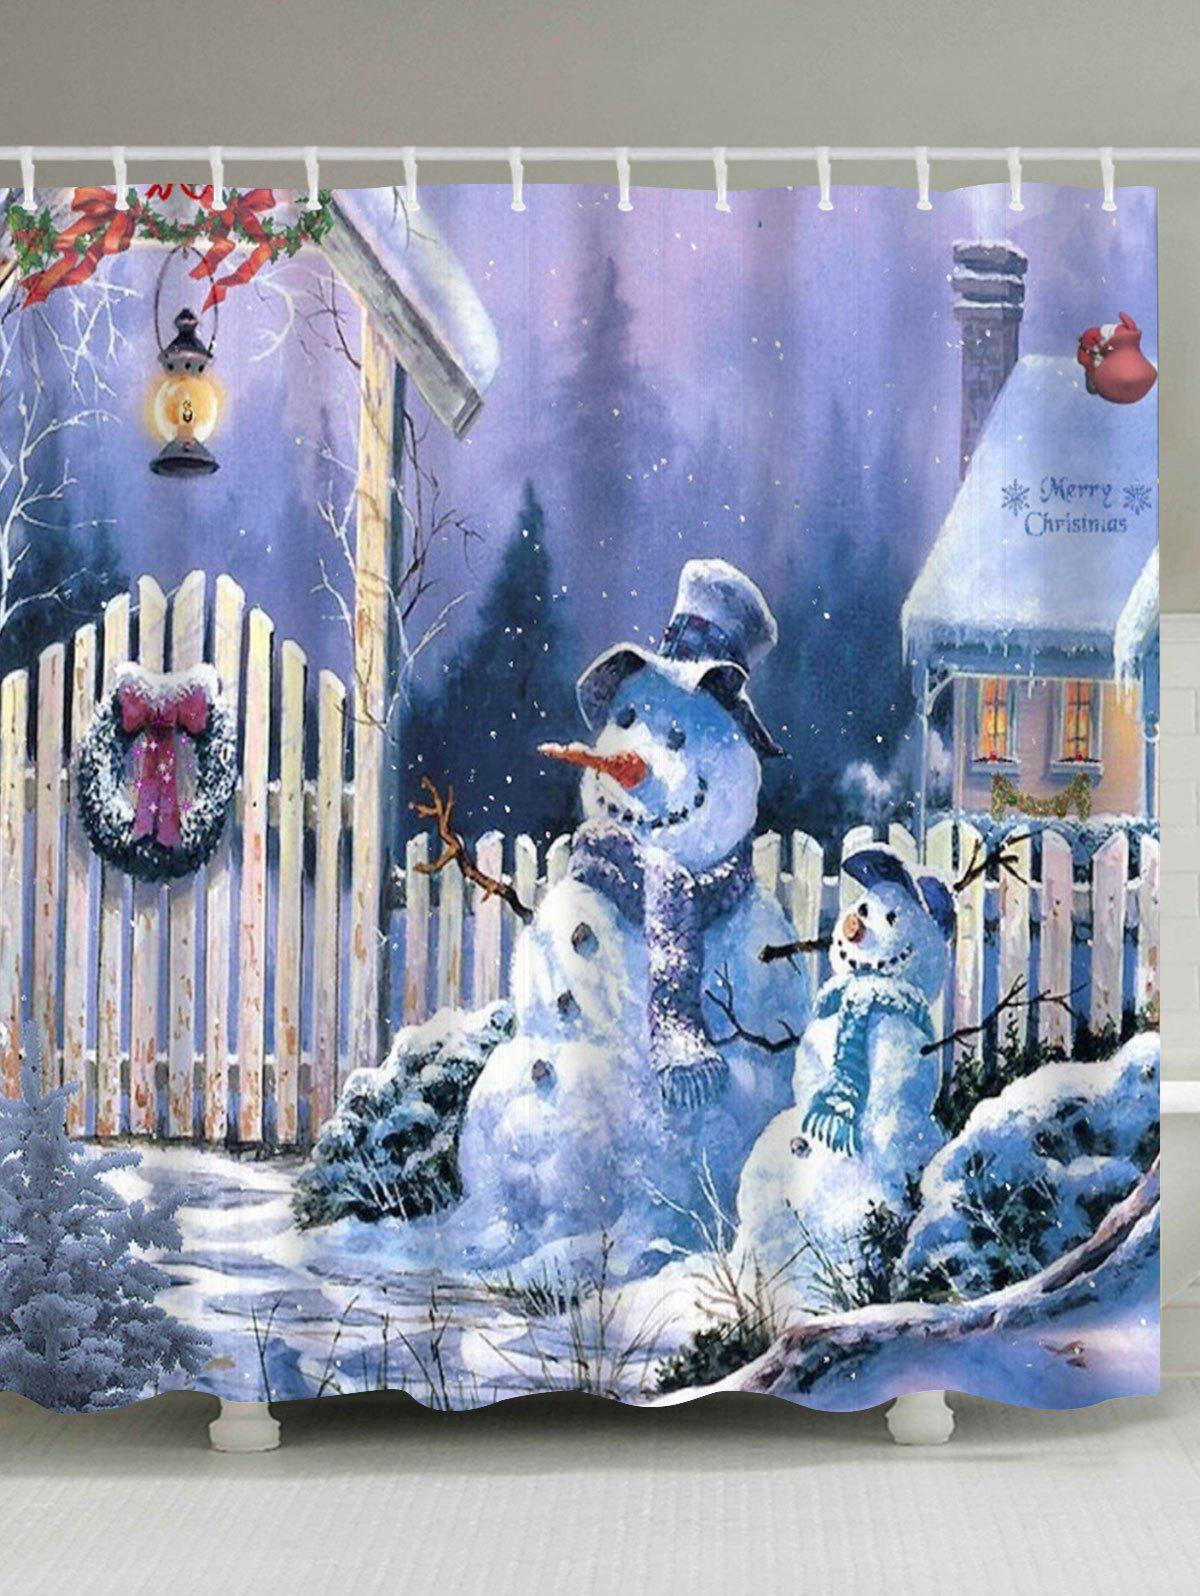 Merry Christmas Snowmen Print Fabric Waterproof Bathroom Shower CurtainHOME<br><br>Size: W71 INCH * L71 INCH; Color: COLORMIX; Products Type: Shower Curtains; Materials: Polyester; Pattern: Print; Style: Festival; Number of Hook Holes: W59 inch*L71 inch: 10; W71 inch*L71 inch: 12; W71 inch*L79 inch: 12; Package Contents: 1 x Shower Curtain 1 x Hooks (Set);